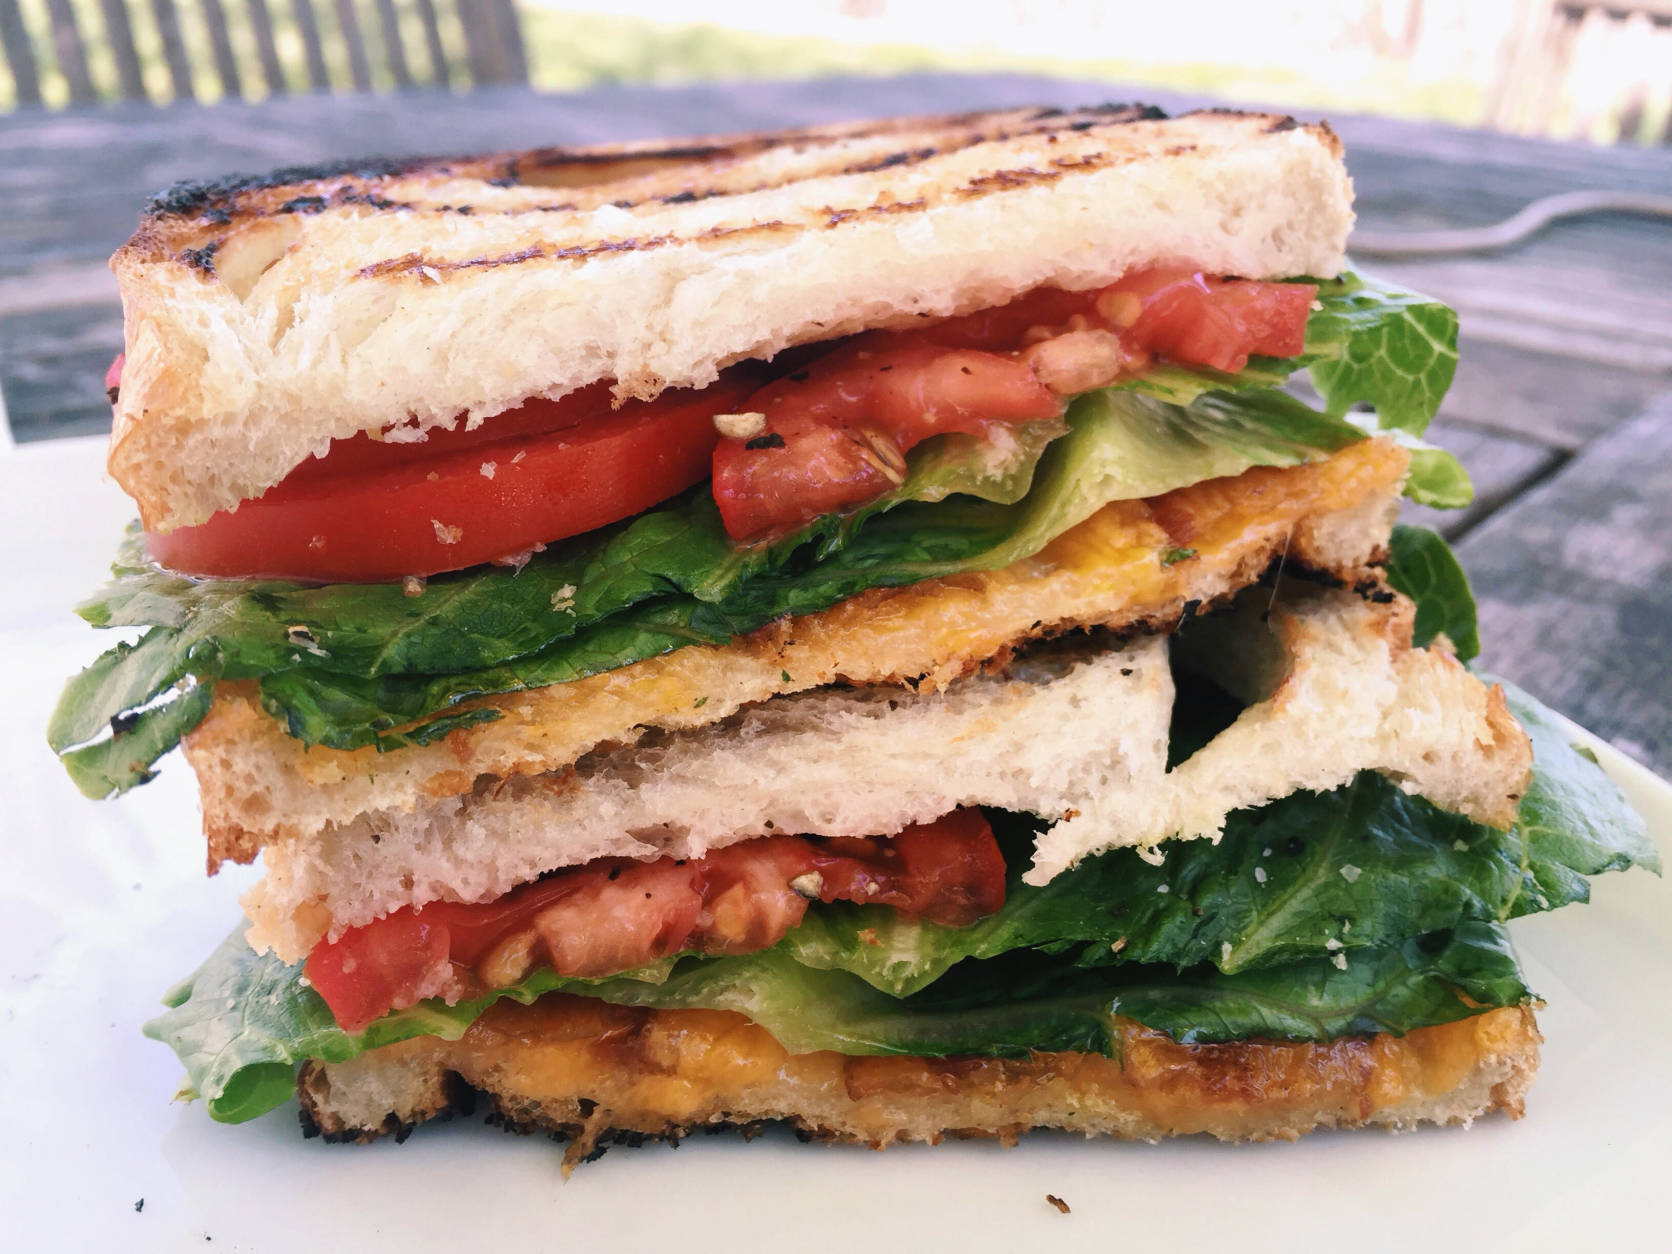 This April 17, 2016 photo shows two favorite sandwiches, the BLT and the grilled cheese, coming together as one, in New Milford, Conn.  The buttery crunch of the bread, the juicy tomatoes, the melty cheese, the crisp bacon and lettuce, these two sandwiches were meant to find each other and become one. (AP Photo/Katie Workman)